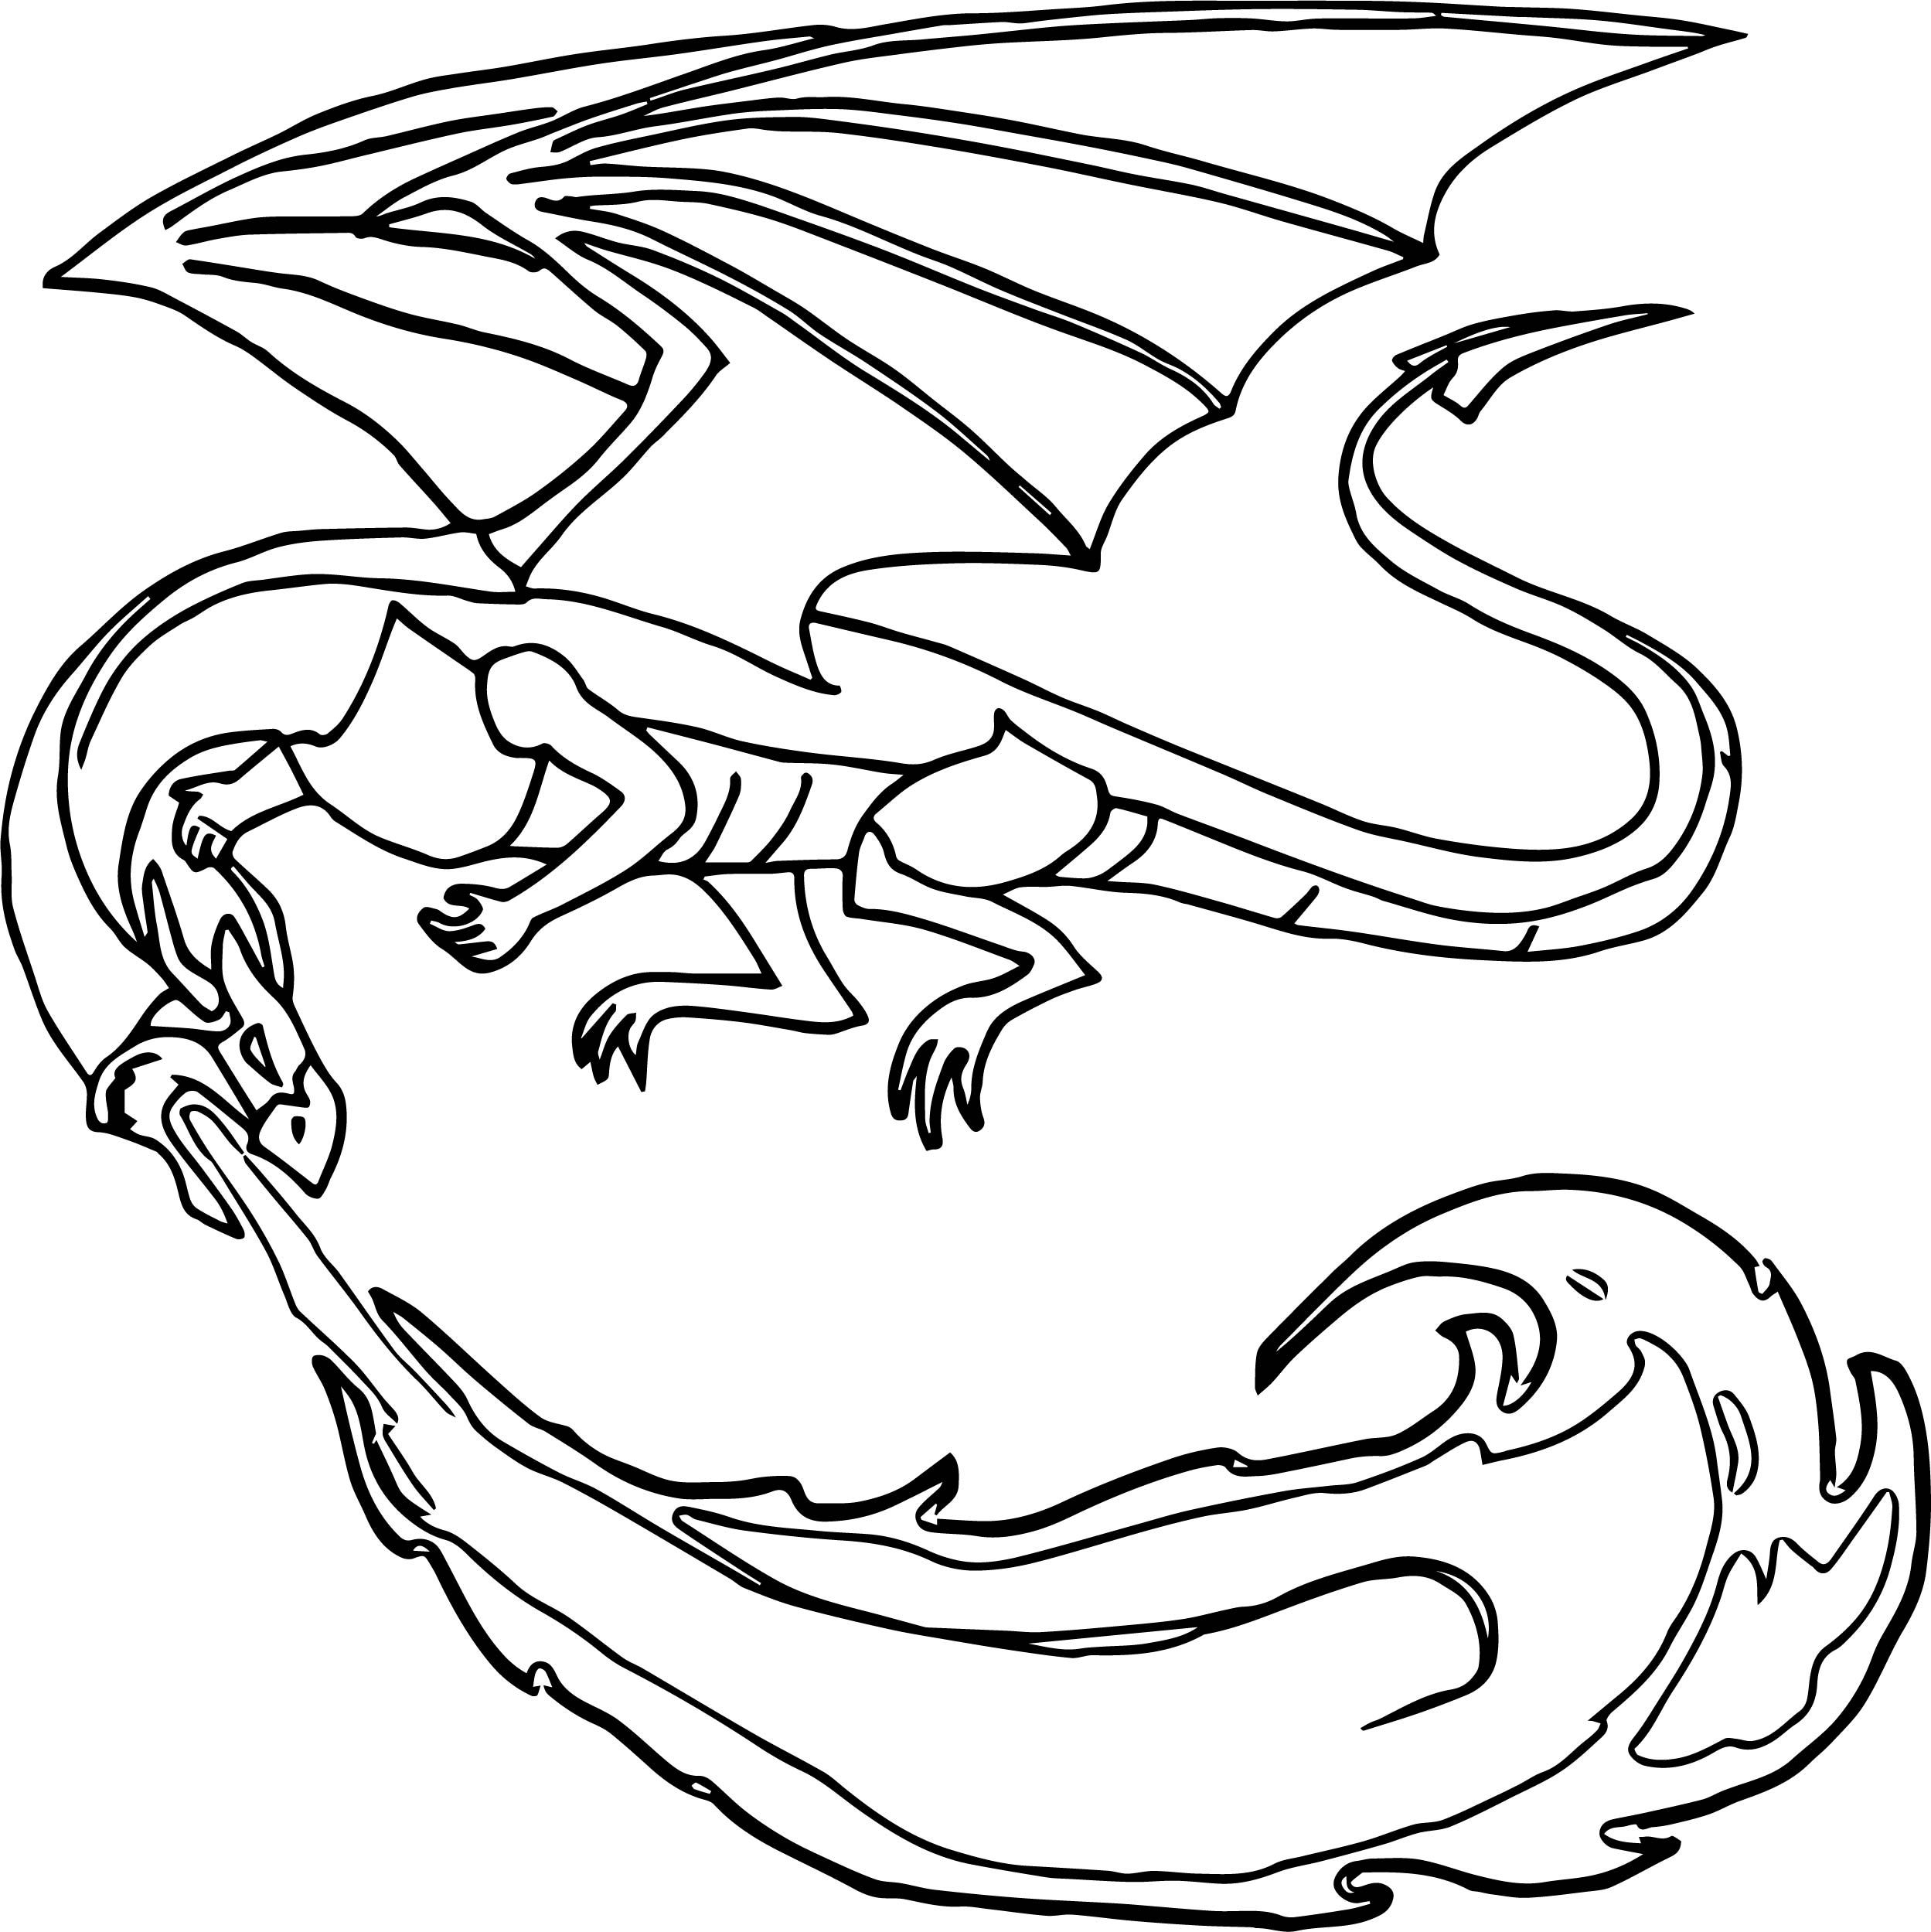 Pin By Hjordis On 2018 Dragon Coloring Page Coloring Pages